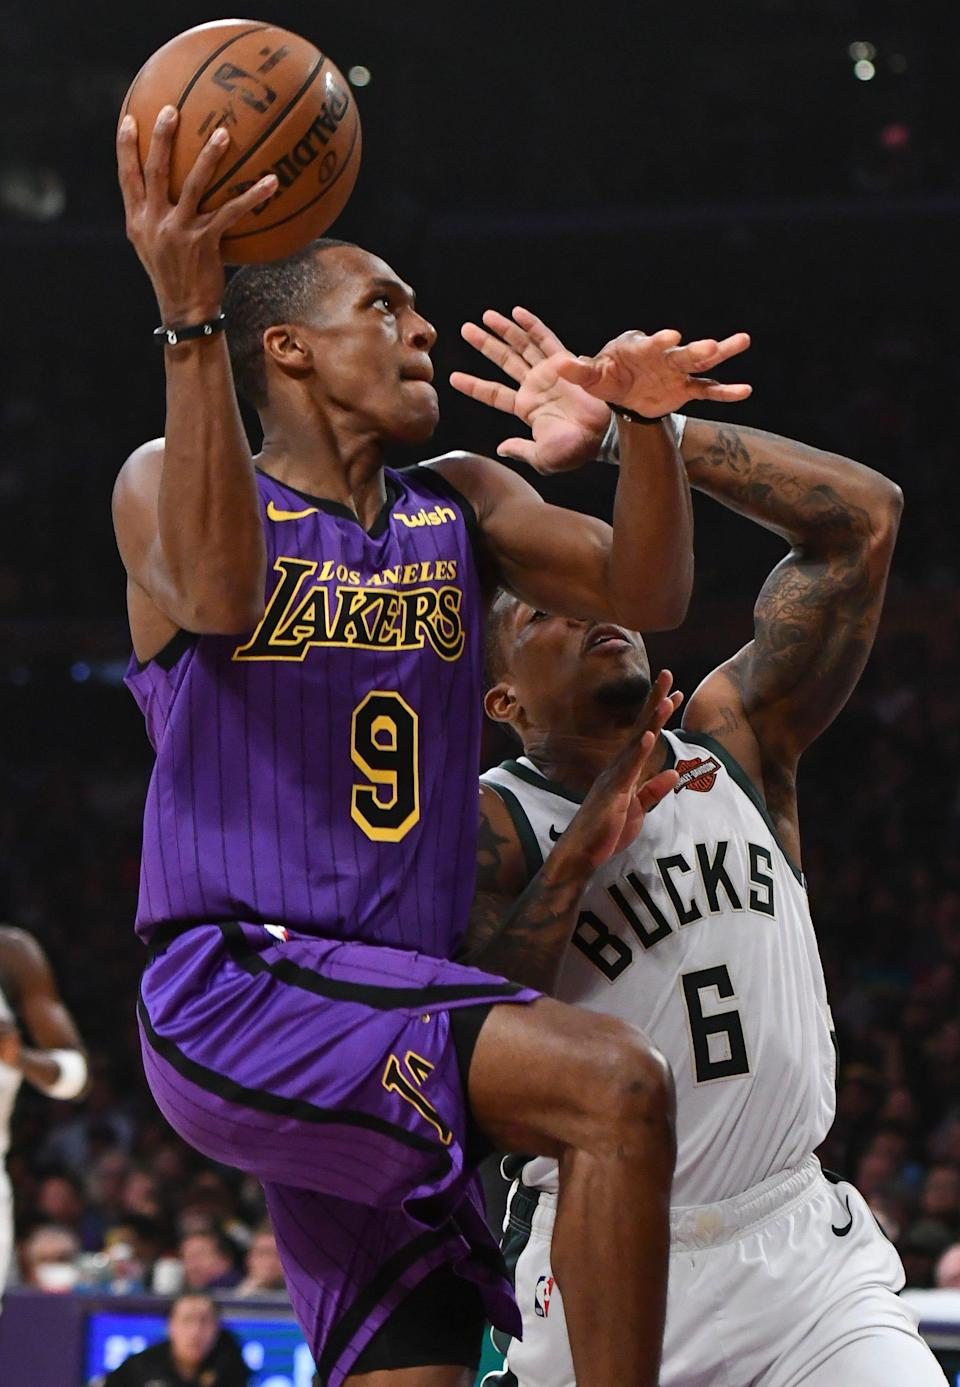 Rajon Rondo (9) was a key piece on the Lakers' roster last season that won a title. But the team did not retain him.